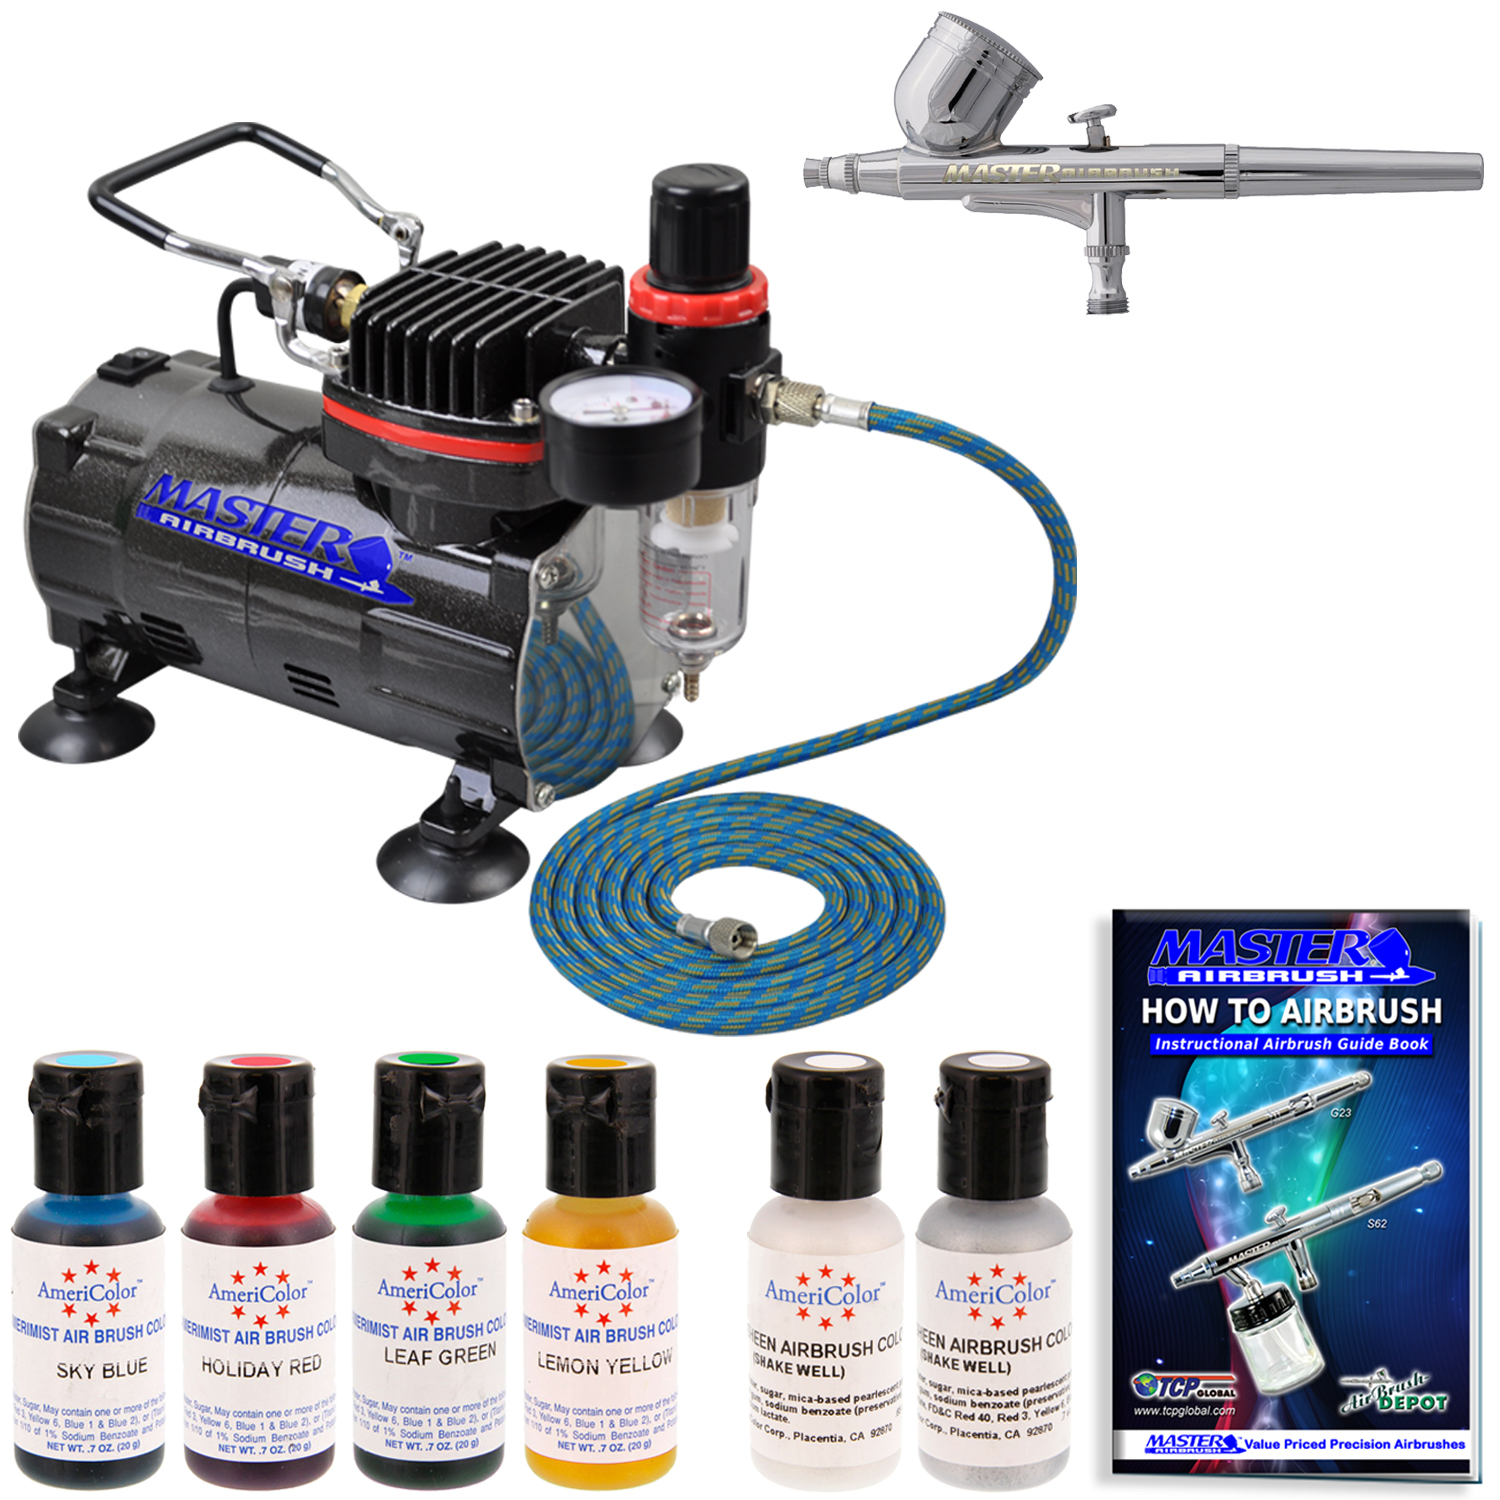 Airbrush For Cake Decorating : Master Airbrush Cake Decorating Kit Air Compressor 6 Color ...